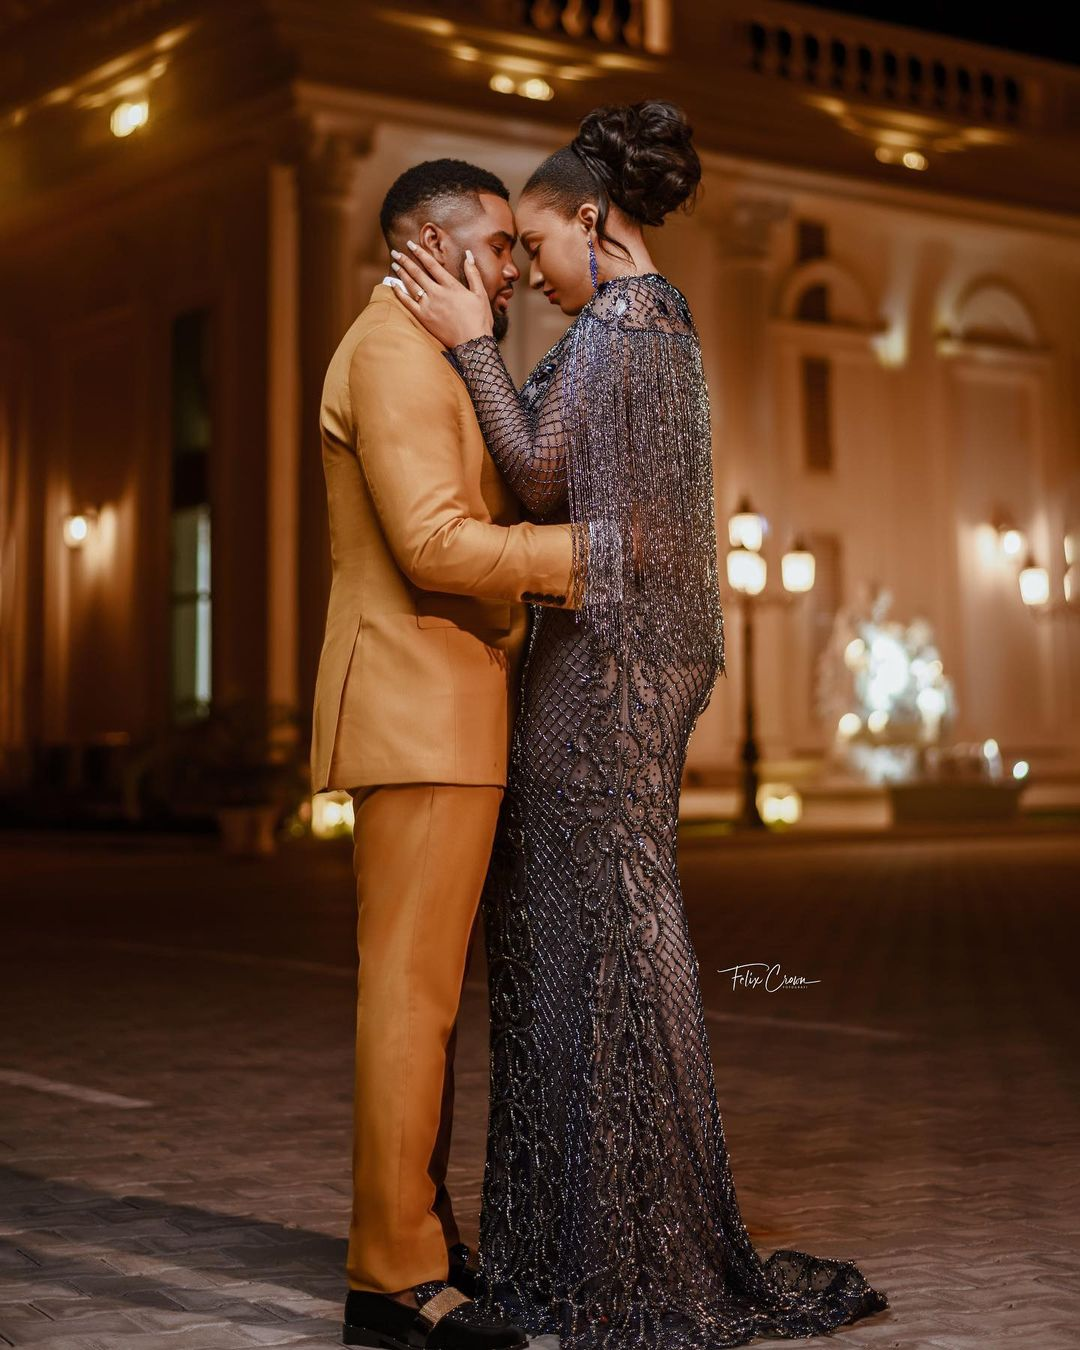 Check Out Stunning Pre-Wedding Pictures Of Williams Uchemba And His Wife To Be